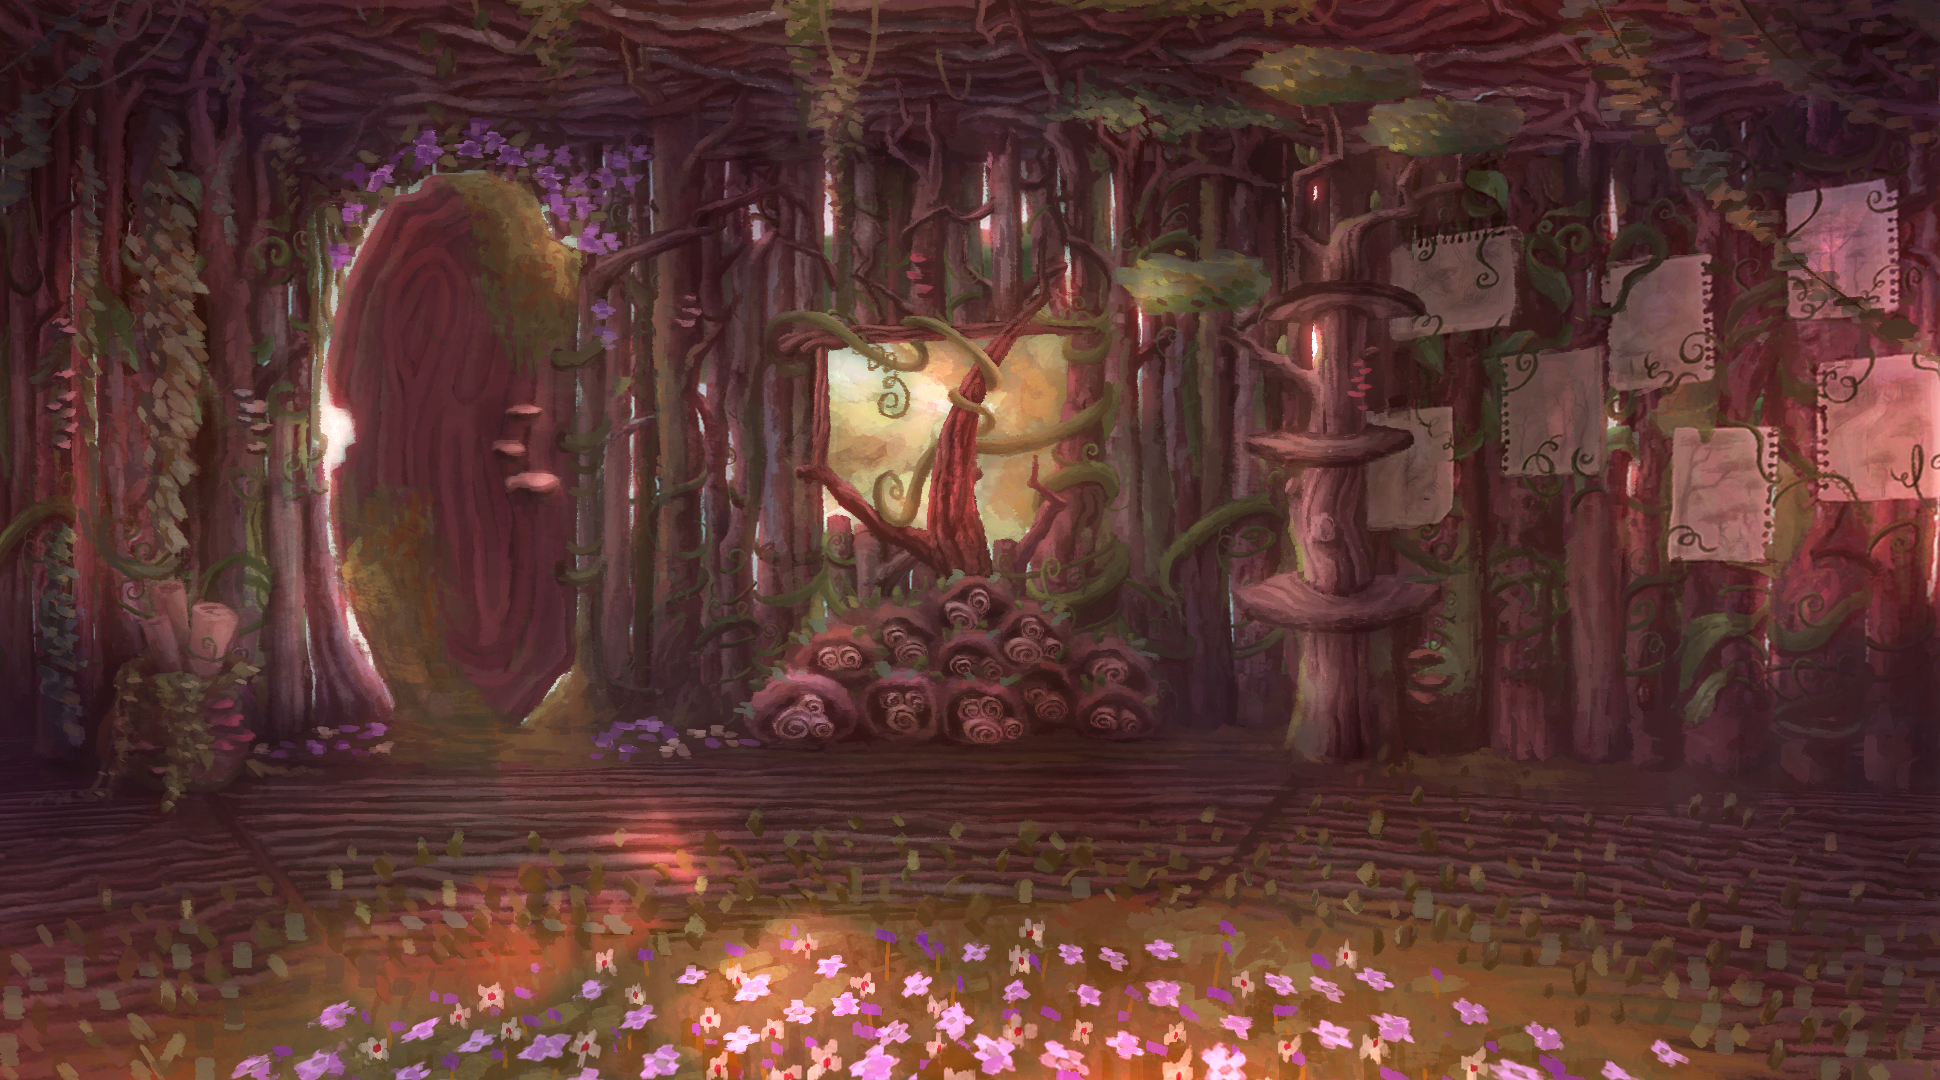 Background for an animated short by Morning Noon & Night